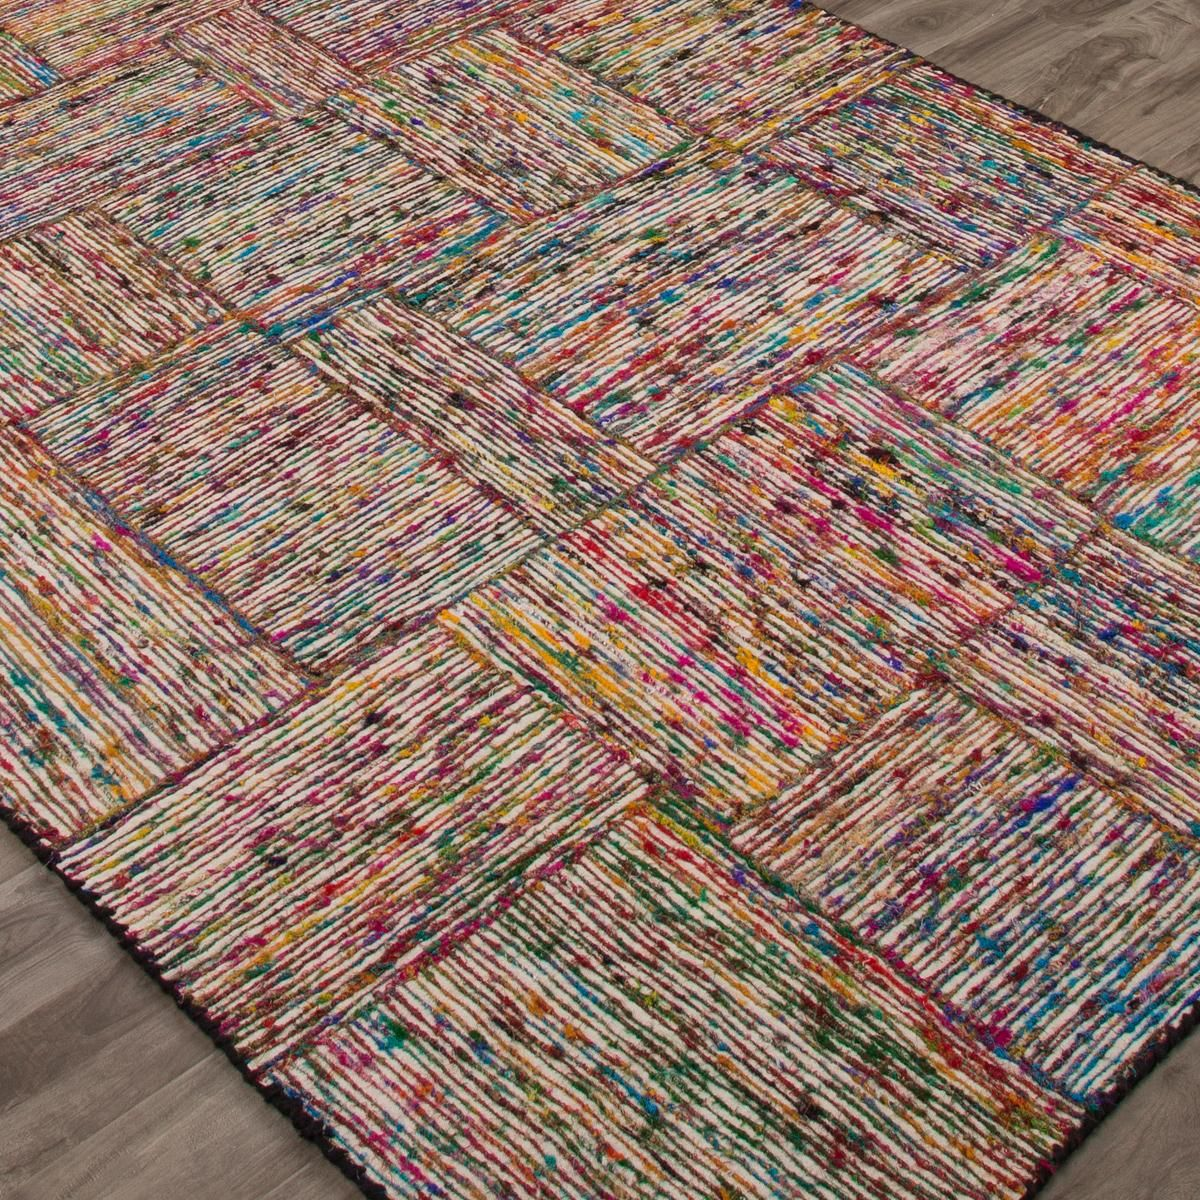 Hand Woven Recycled Material Rug Diy Carpet Rugs Woven Tapestry Art